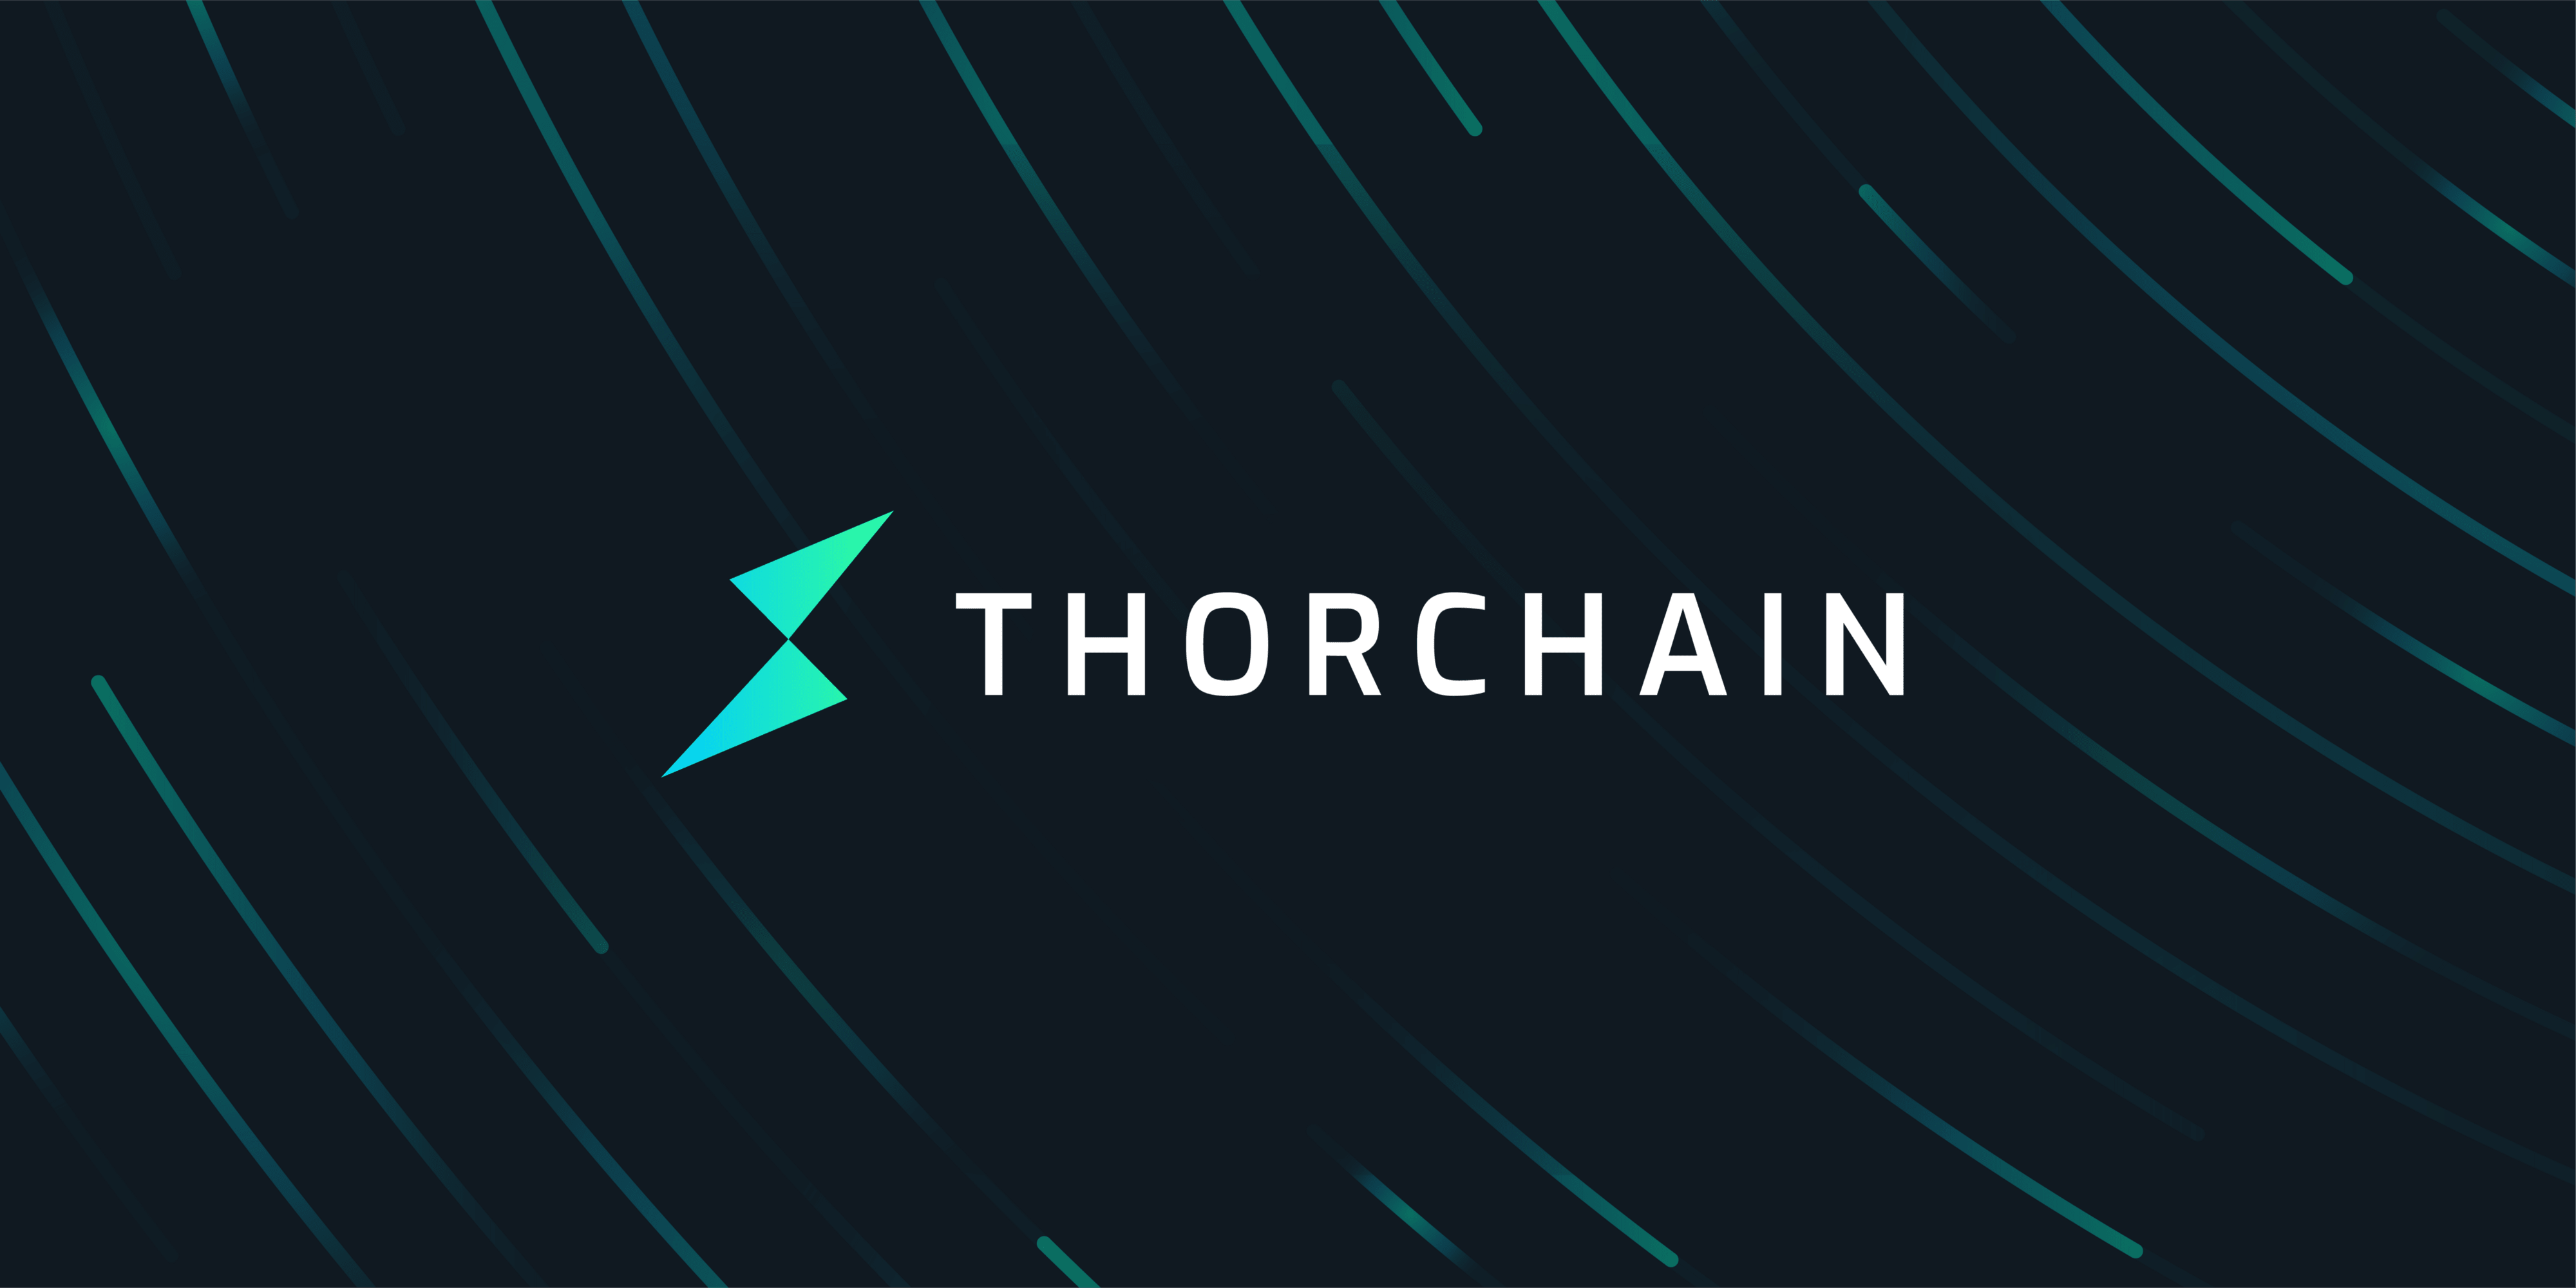 THORChain Summary, Research Notes, Links and Videos